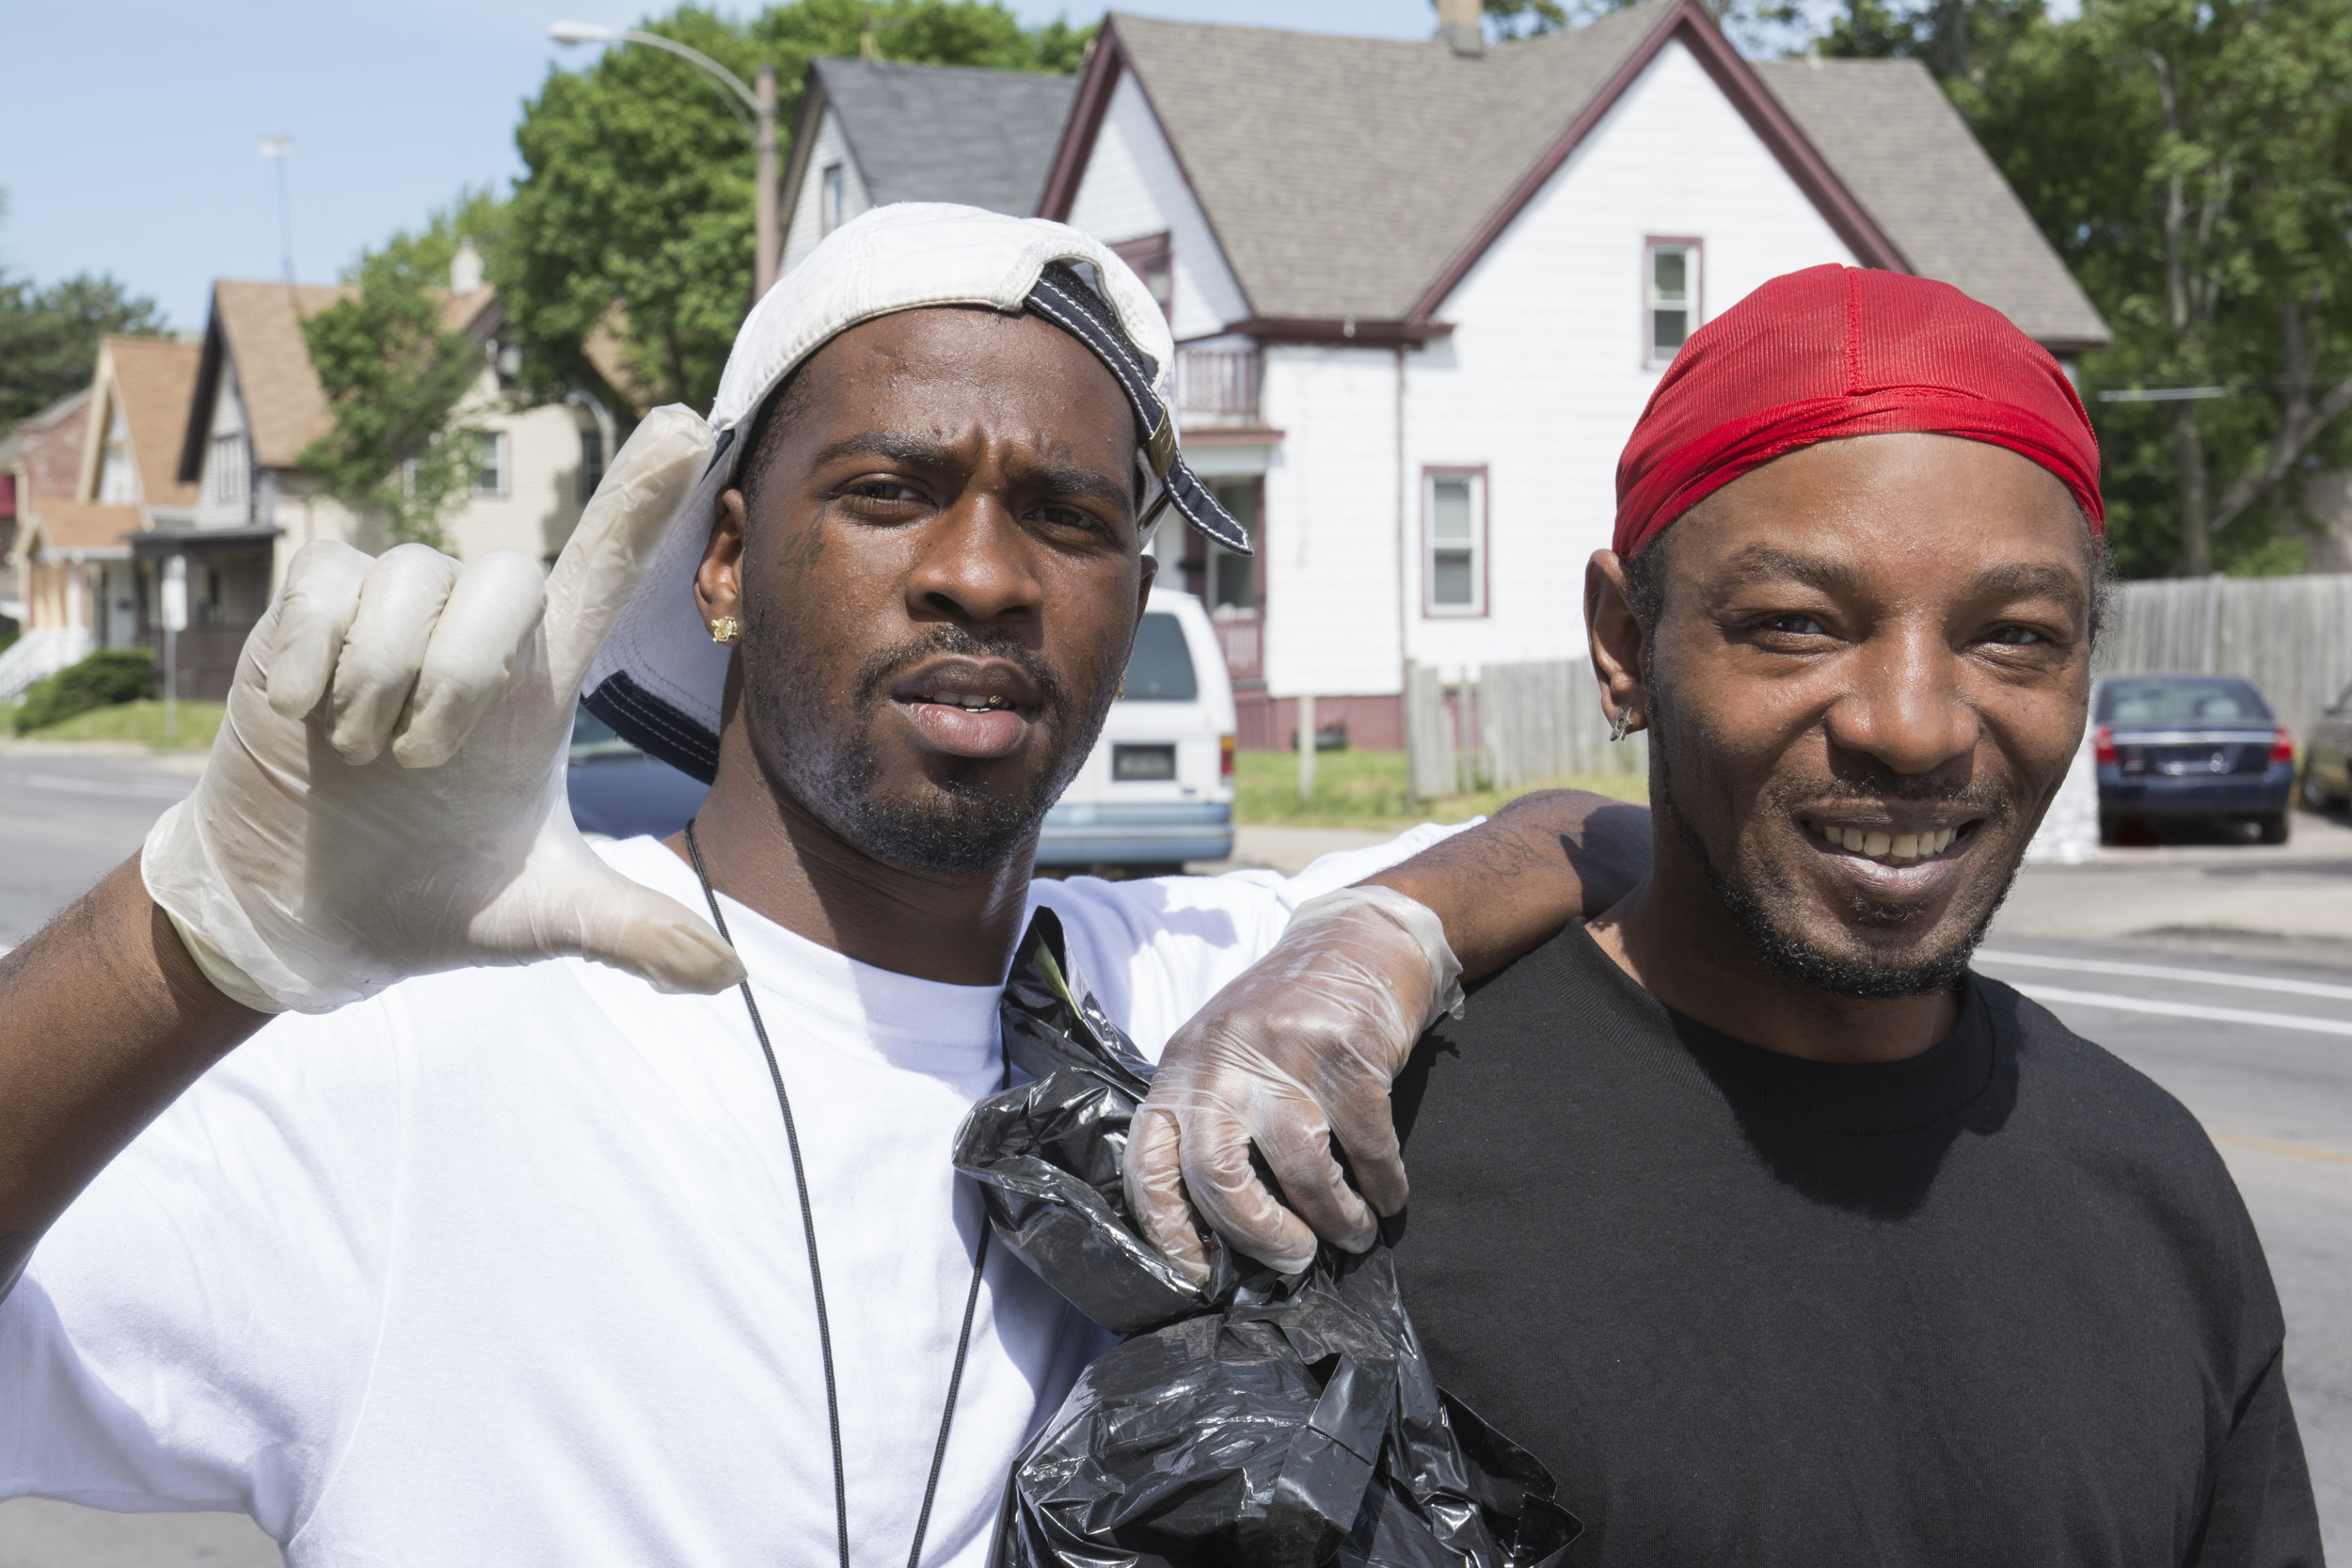 """Cheddar and Ronnie are volunteers. They spend time off work picking up discarded waste in their neighborhood. """"Somebody's gotta do it,"""" Ronnie told me. """"The streets and alleys can get messy."""""""